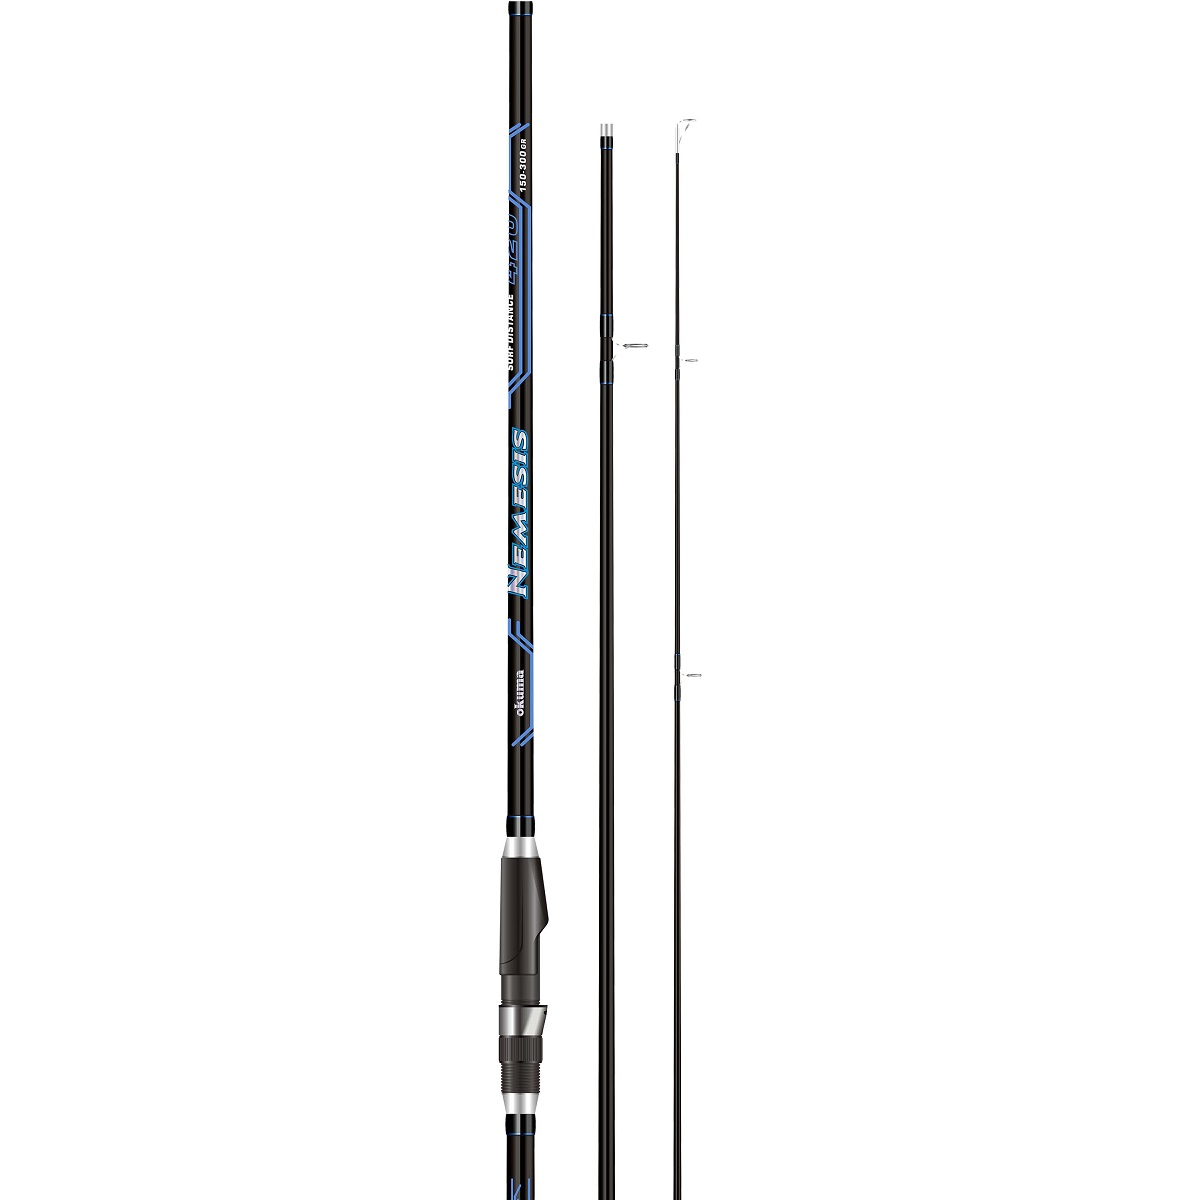 Nemesis Surf Rod (2018 NEW) - Nemesis Surf Rod